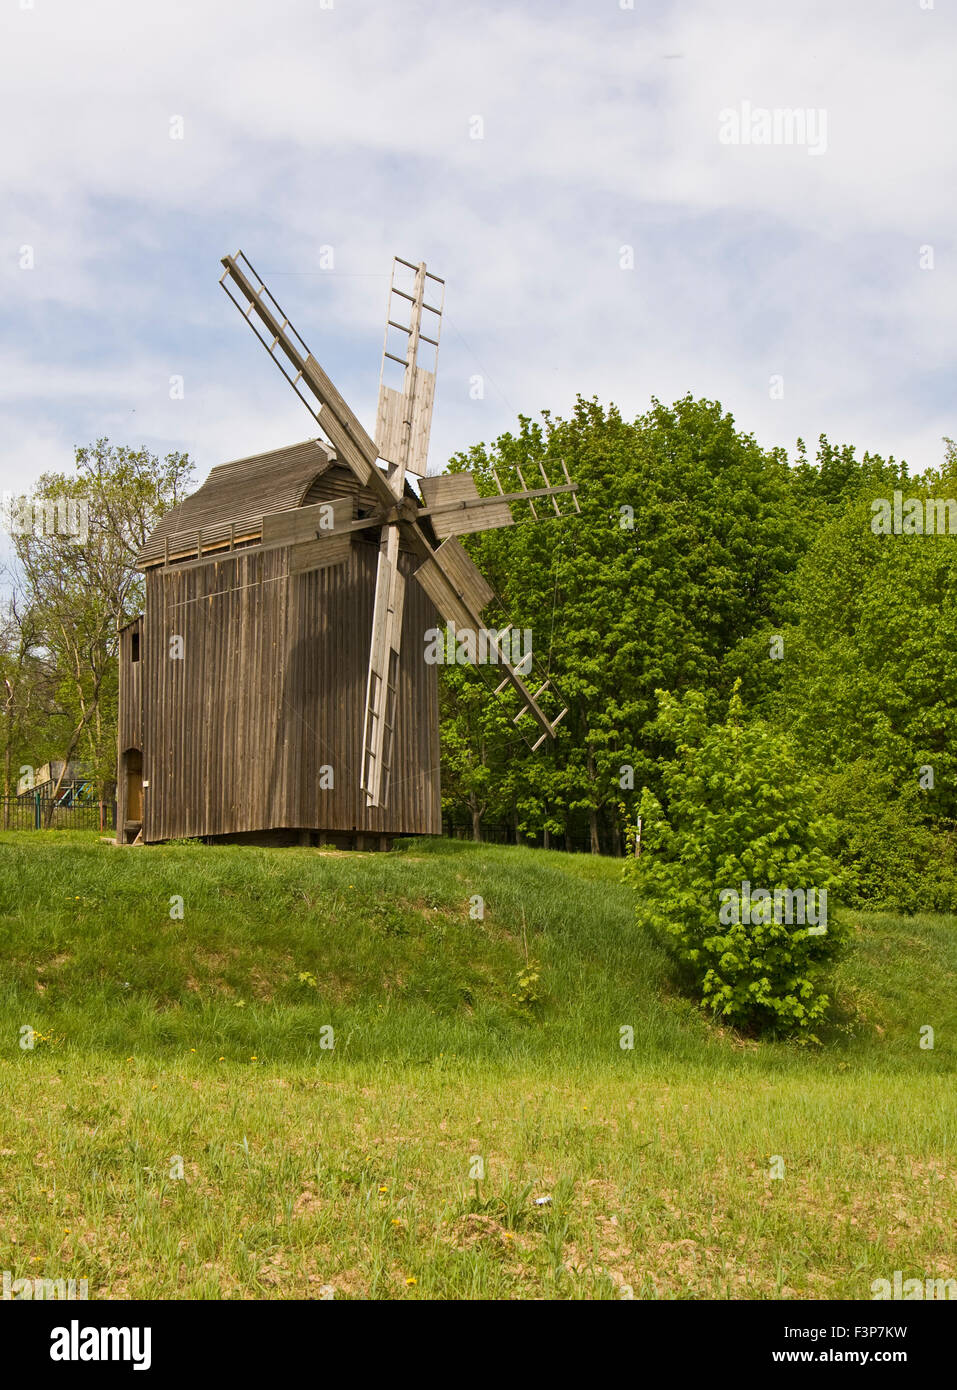 Wooden windmill in landscape. Recorded in outdoors museum of national architecture in Pirogovo near Kiev in Ukraine. - Stock Image